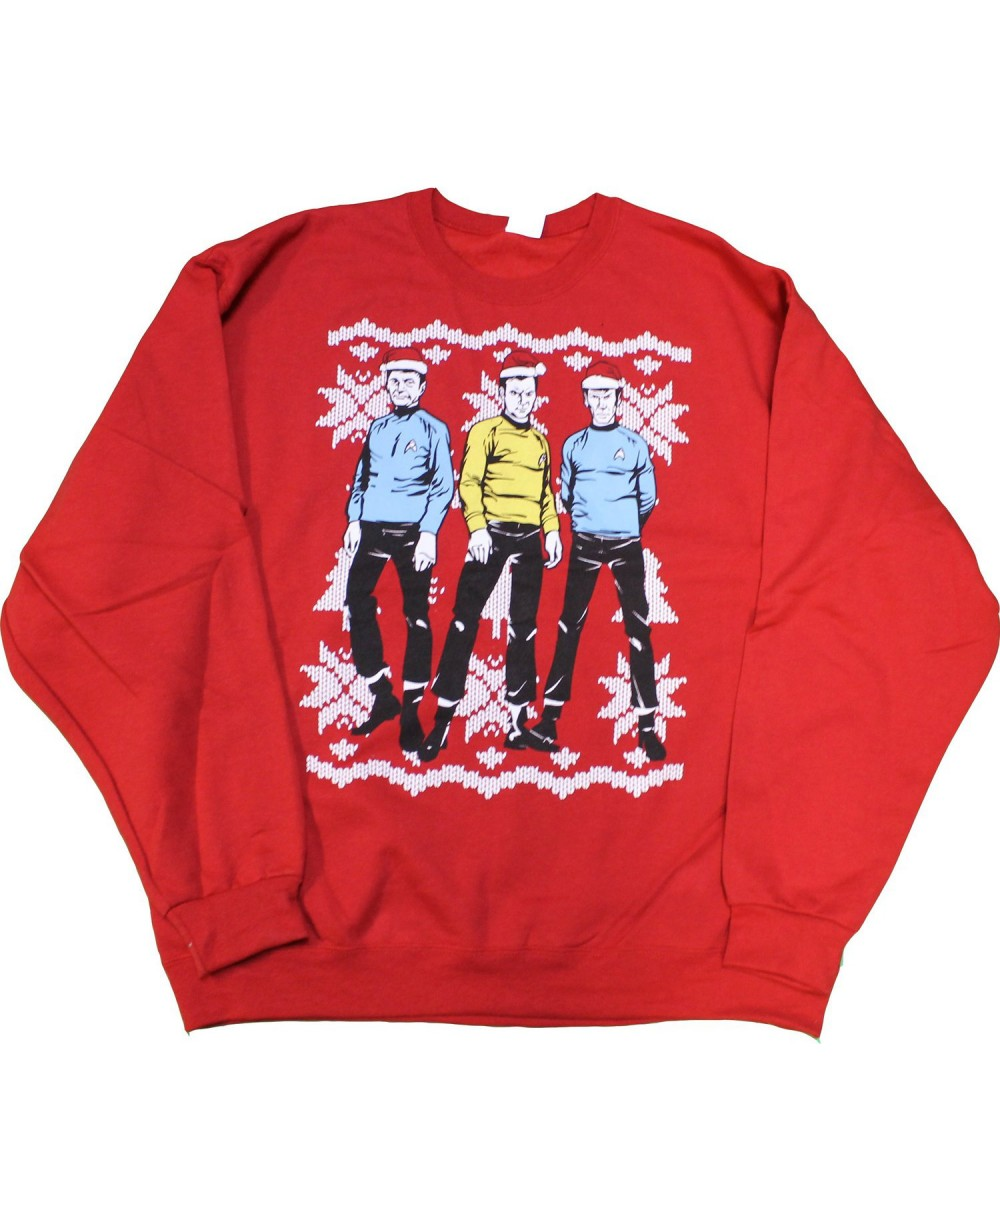 Bad Christmas Sweater Party